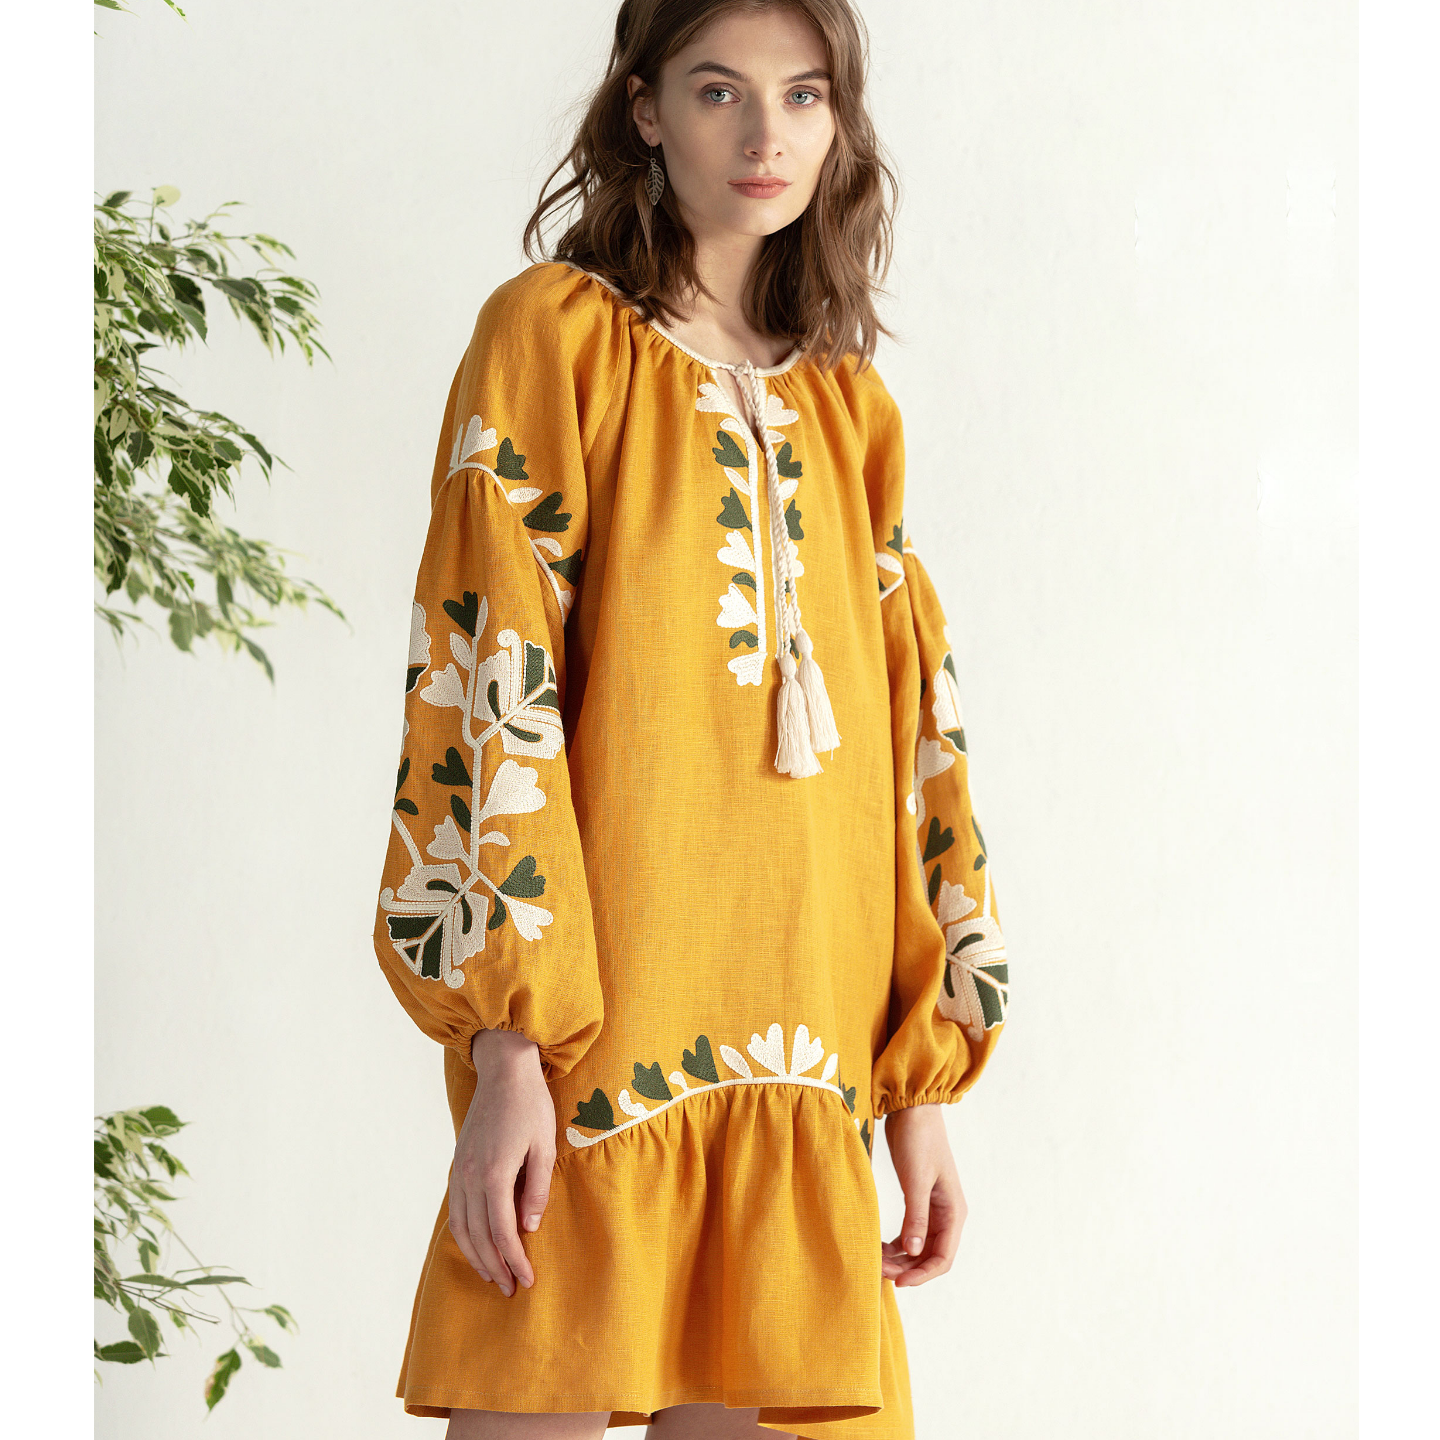 Yellow midi dress with embroidery Jungle